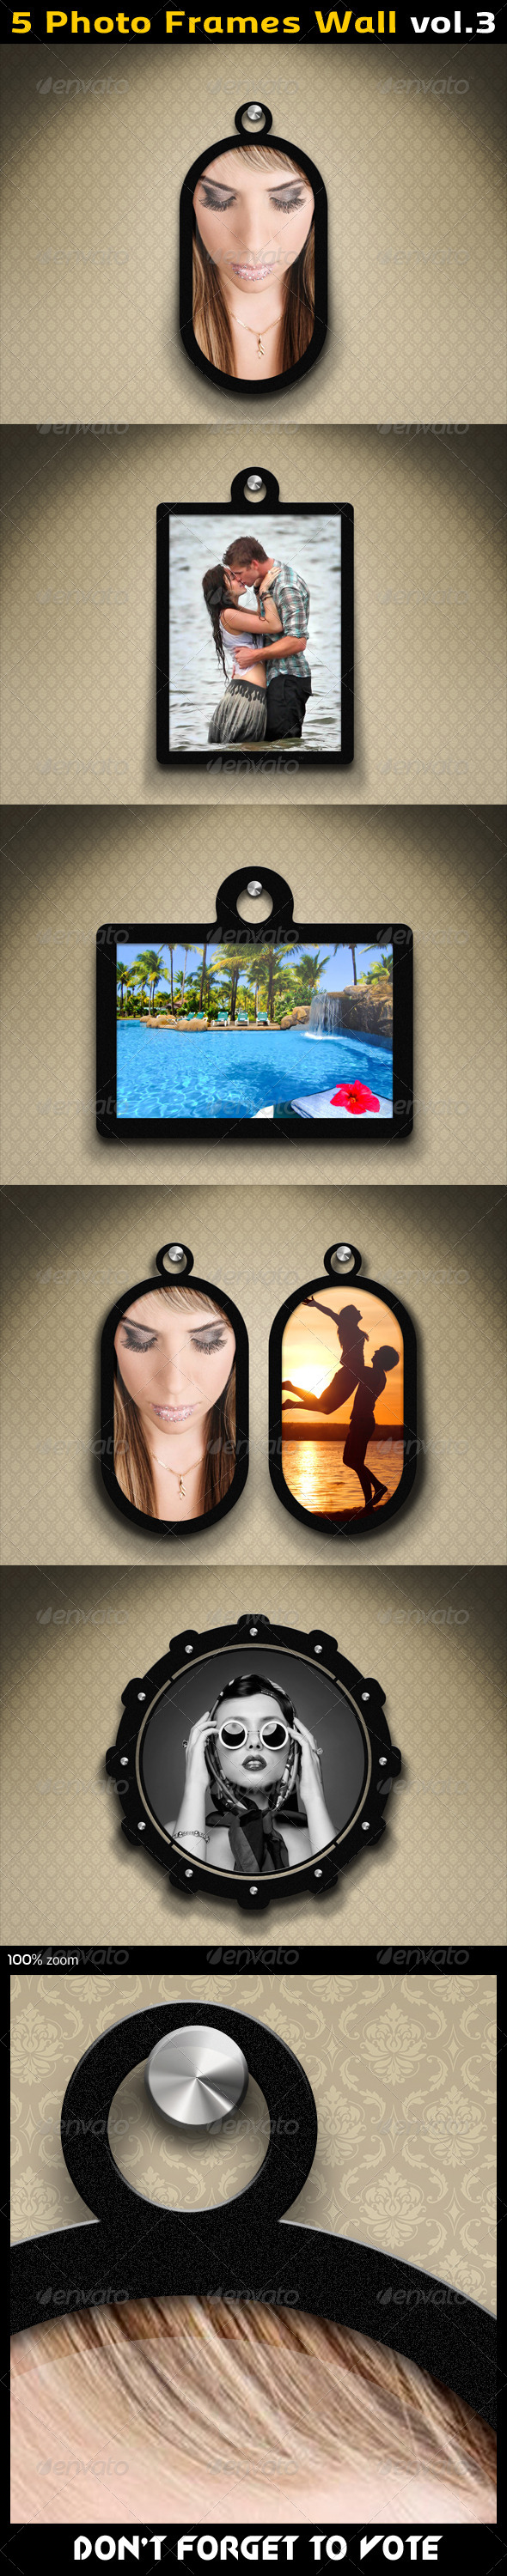 GraphicRiver Photo Frames Wall 03 5604295